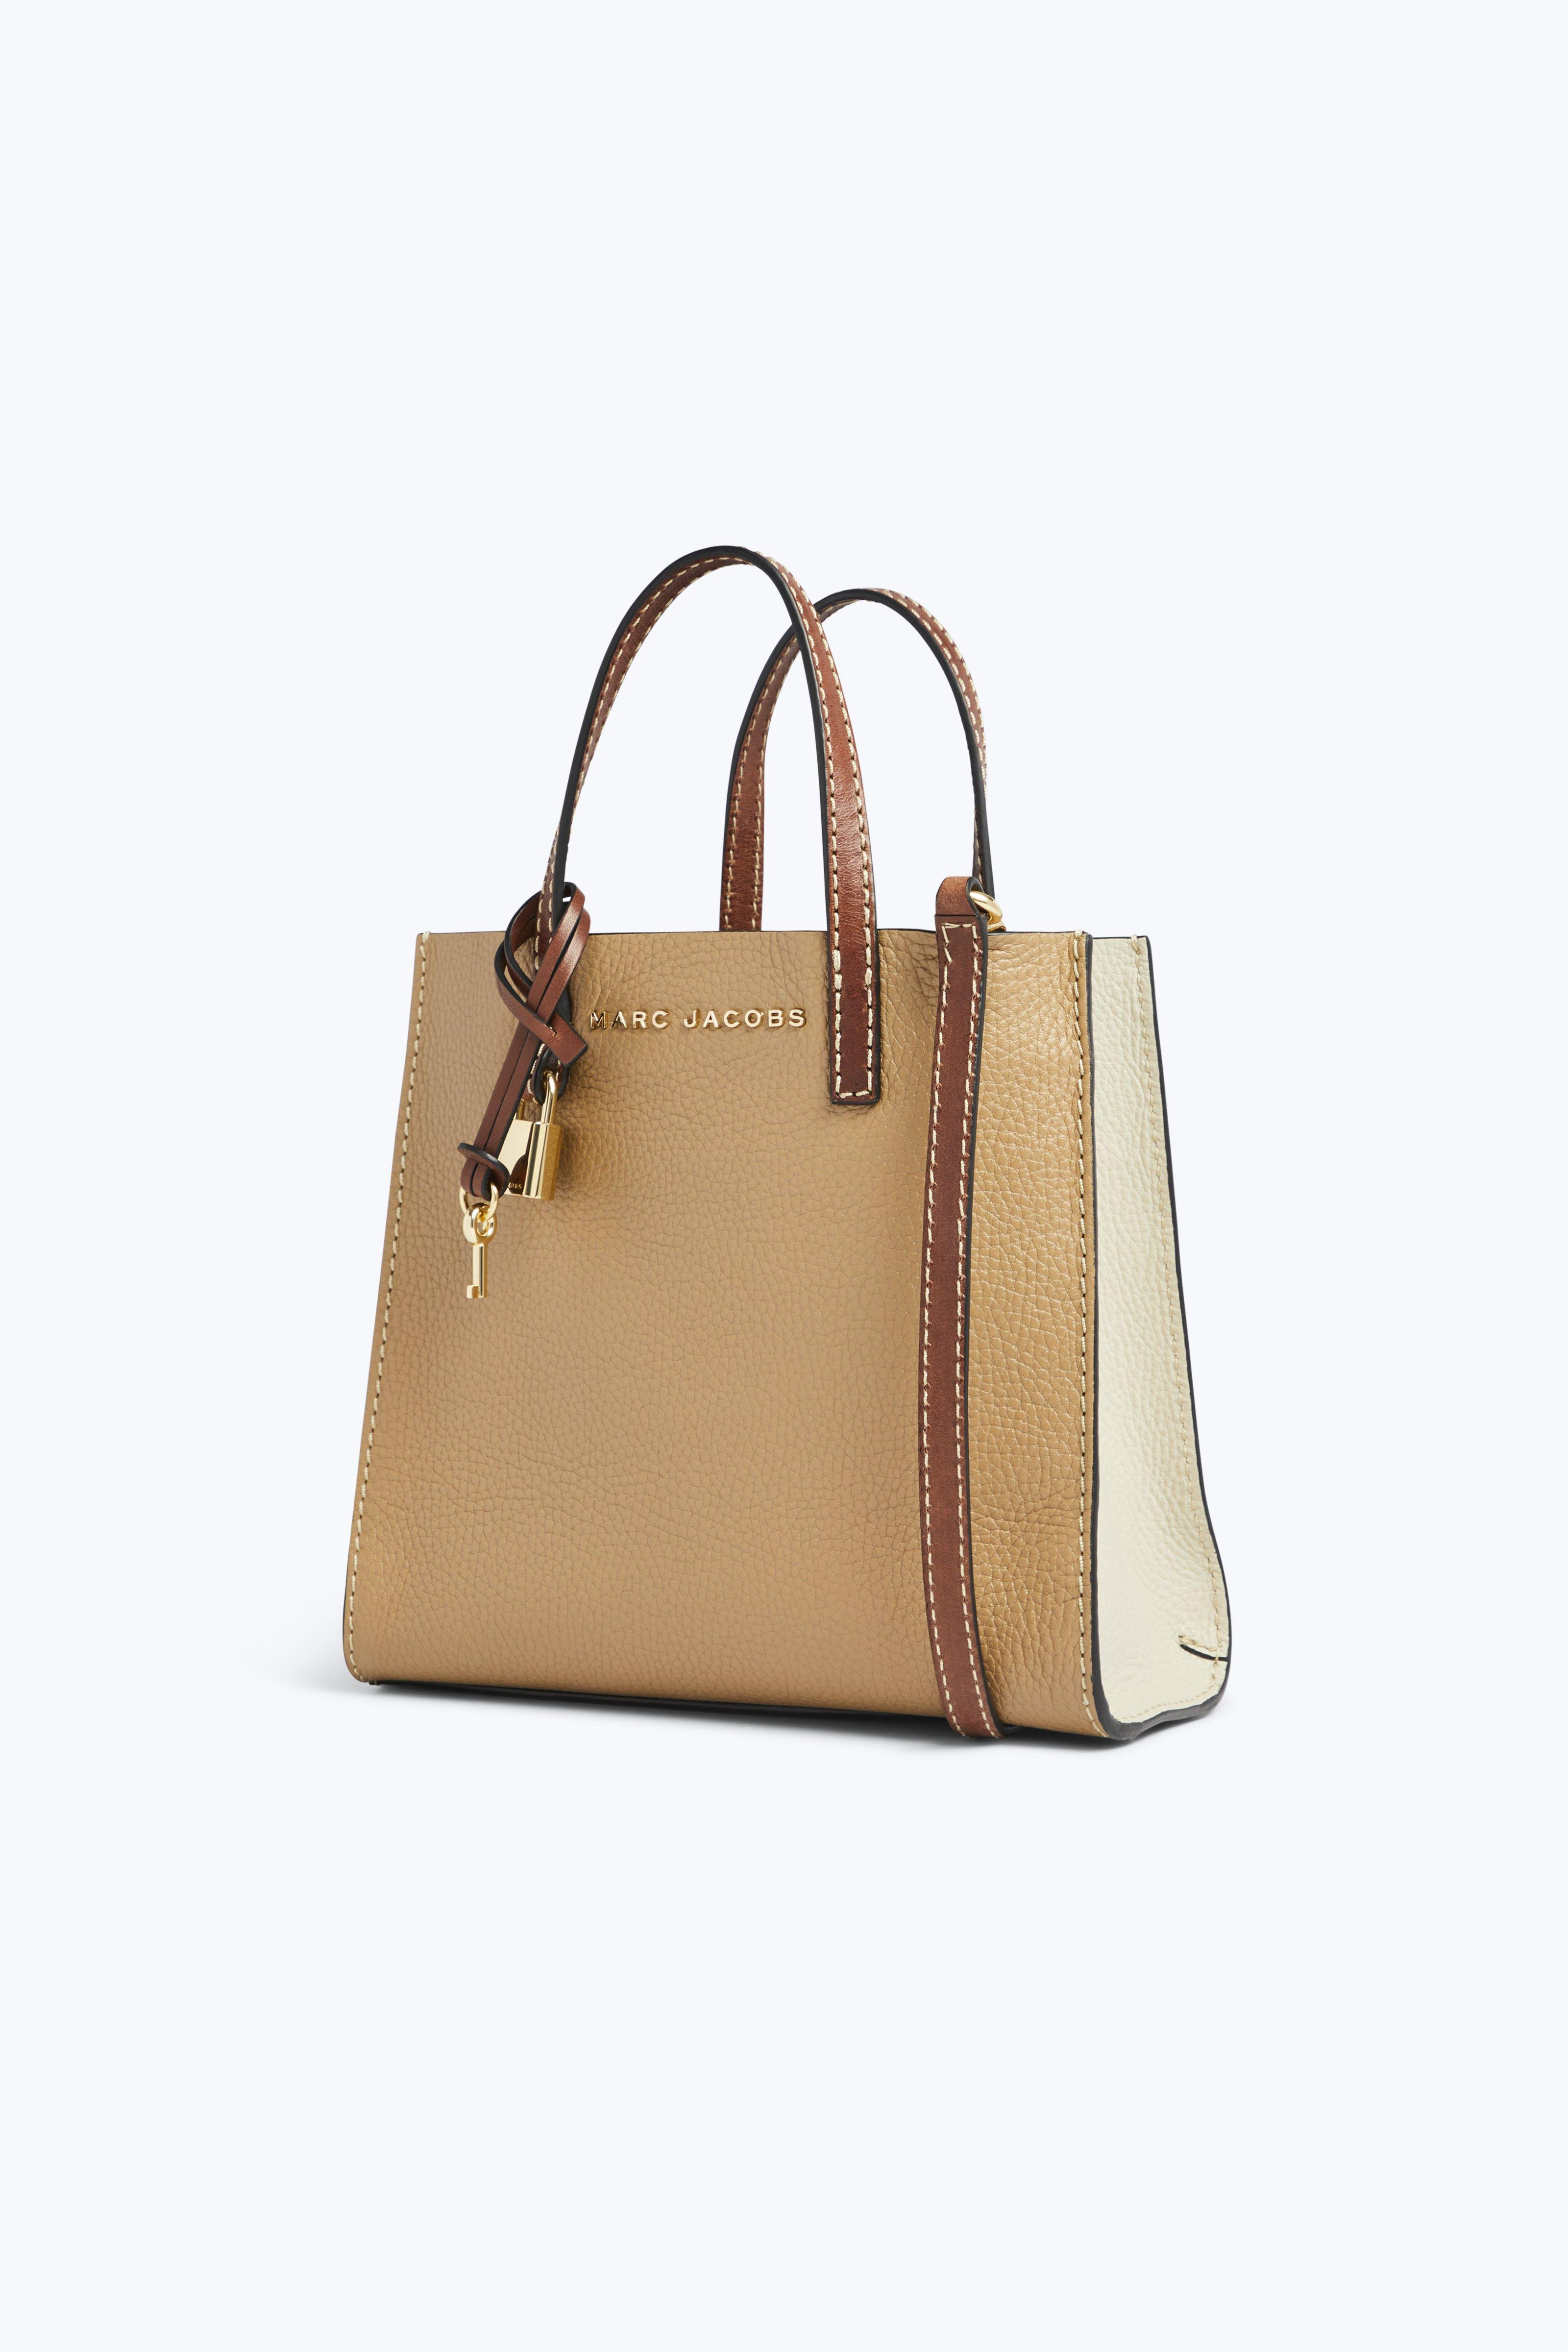 Lyst - Marc Jacobs The Colorblock Mini Grind Bag in Natural 19f14eecc1fe